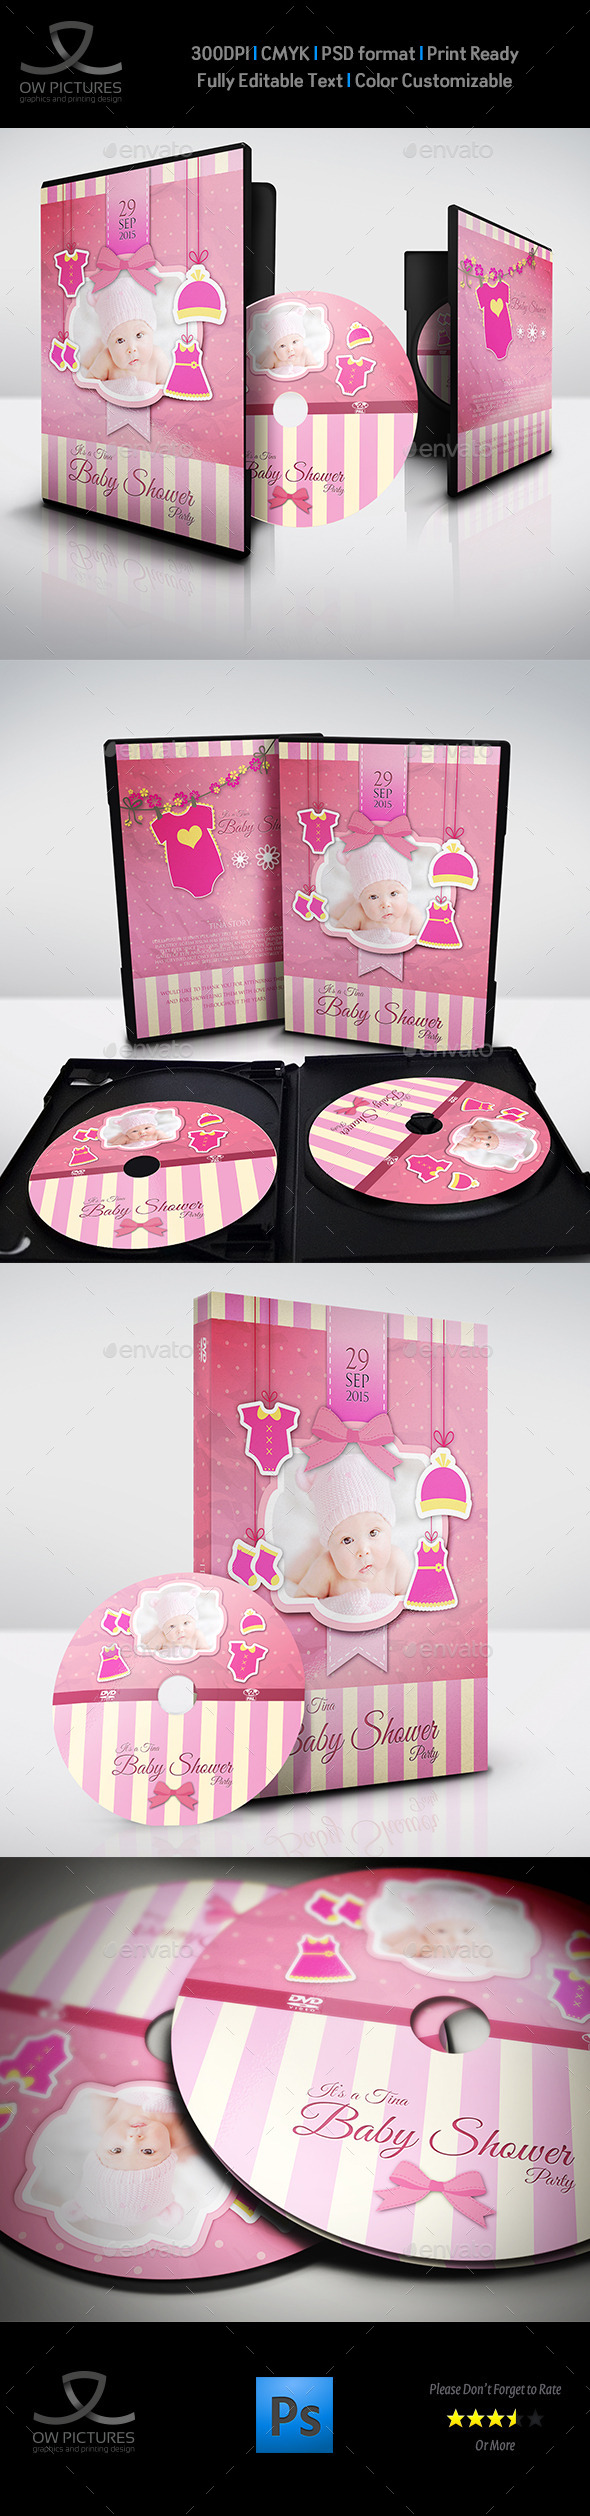 Baby Shower Party DVD Template Vol.5 - CD & DVD Artwork Print Templates